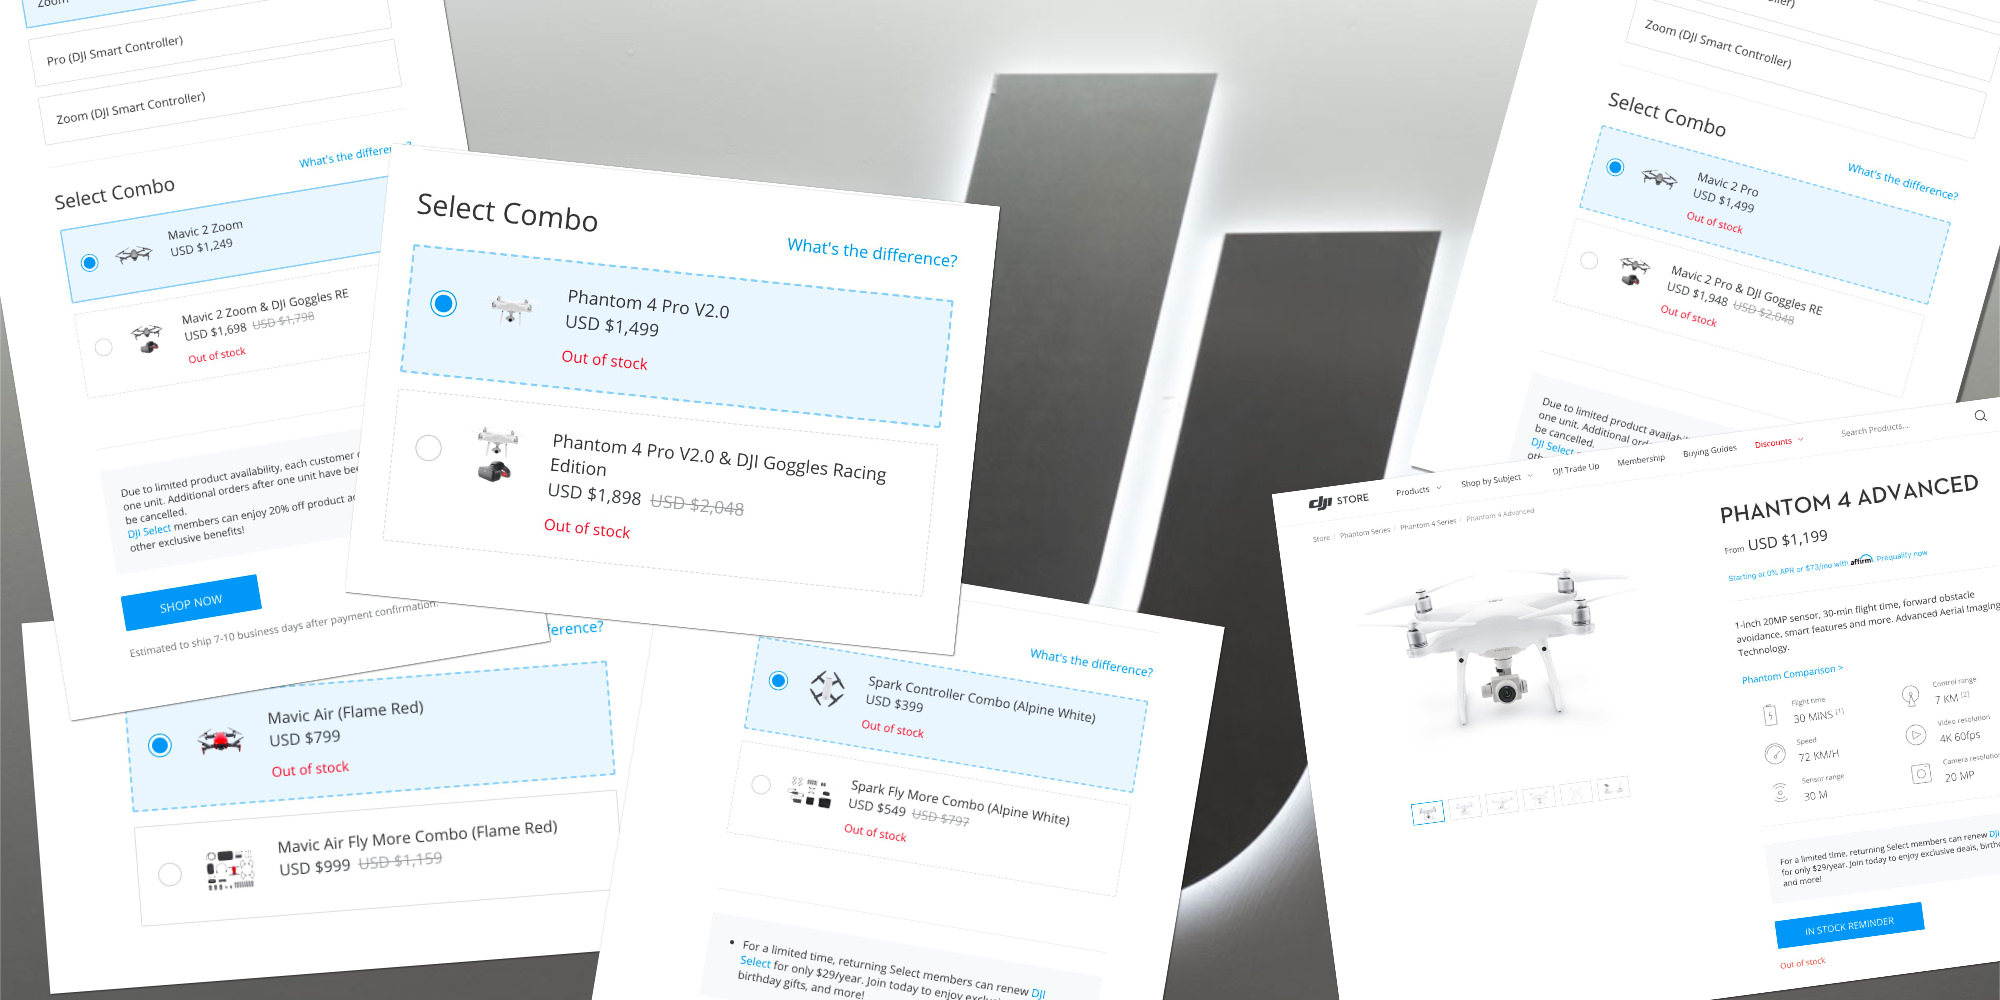 Almost all DJI drones are out of stock at official DJI online store